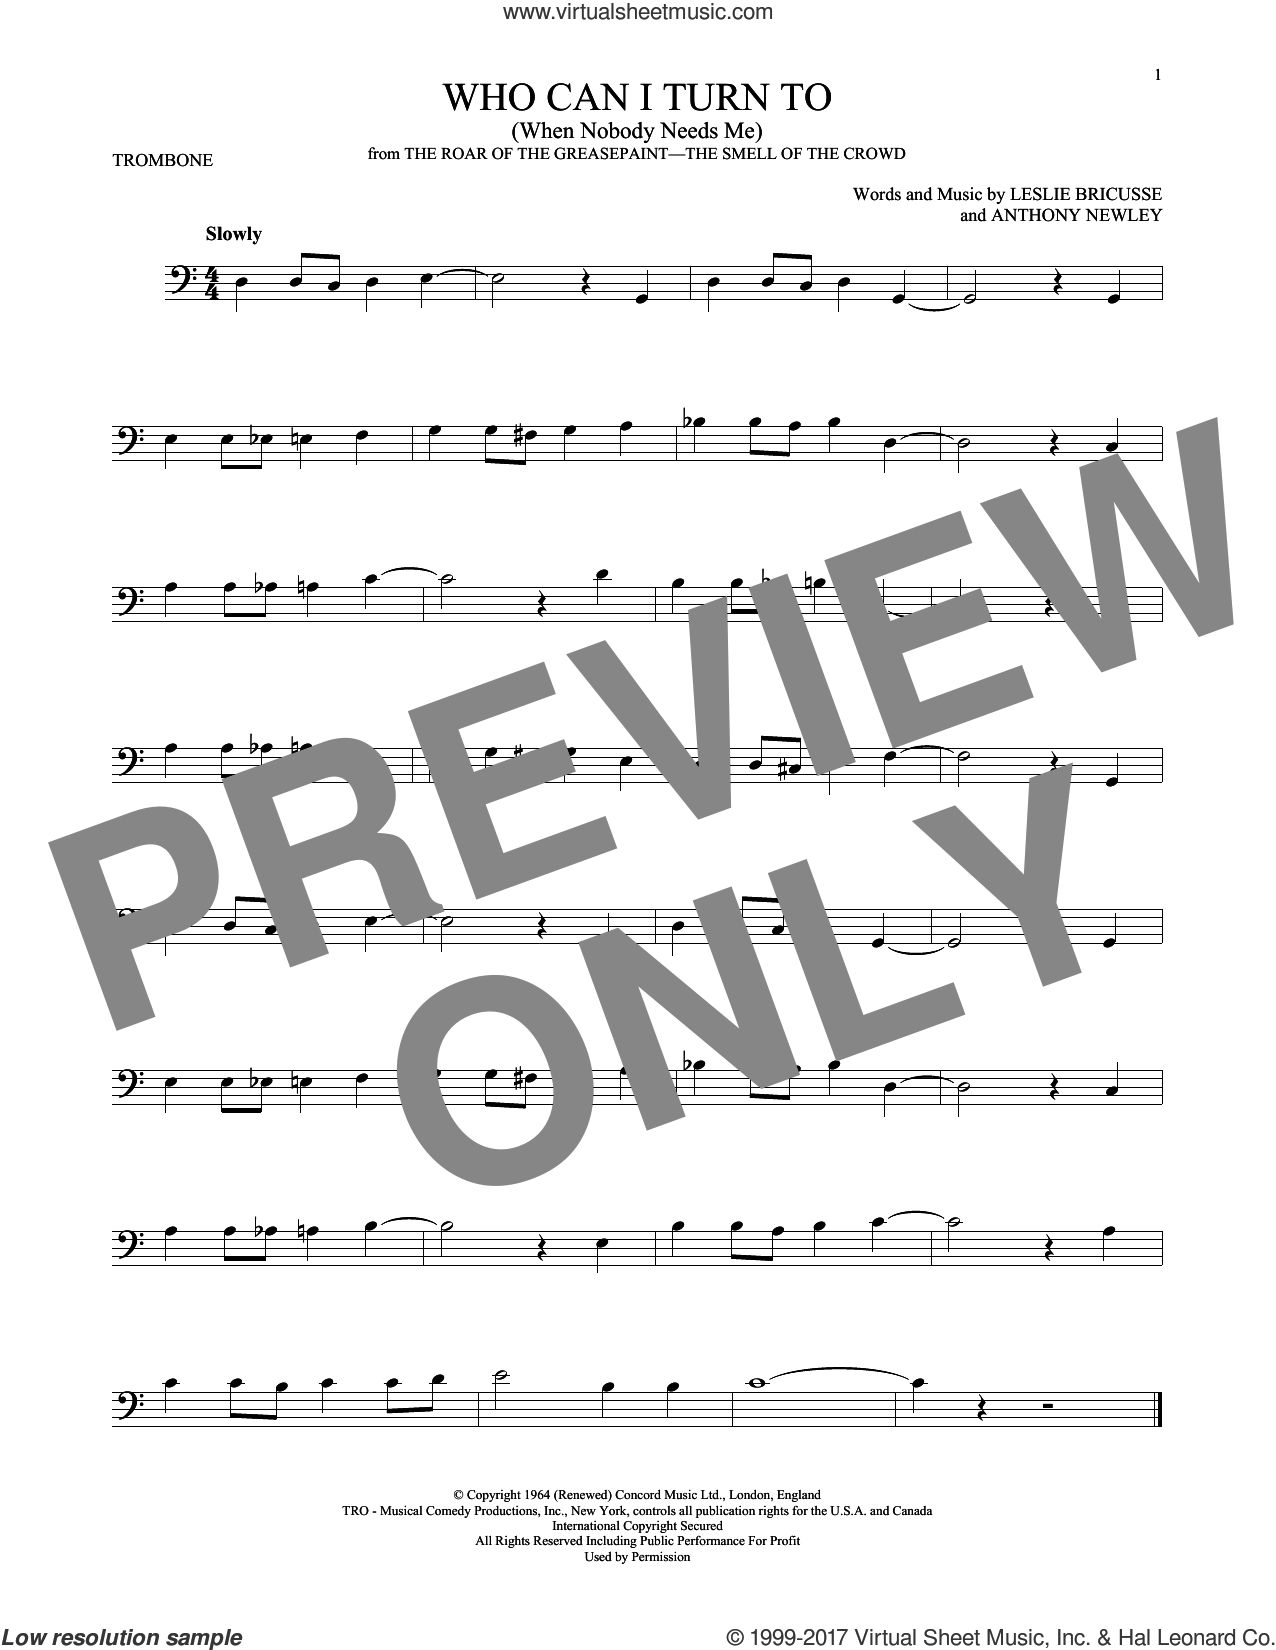 Who Can I Turn To (When Nobody Needs Me) sheet music for trombone solo by Leslie Bricusse and Anthony Newley, intermediate skill level